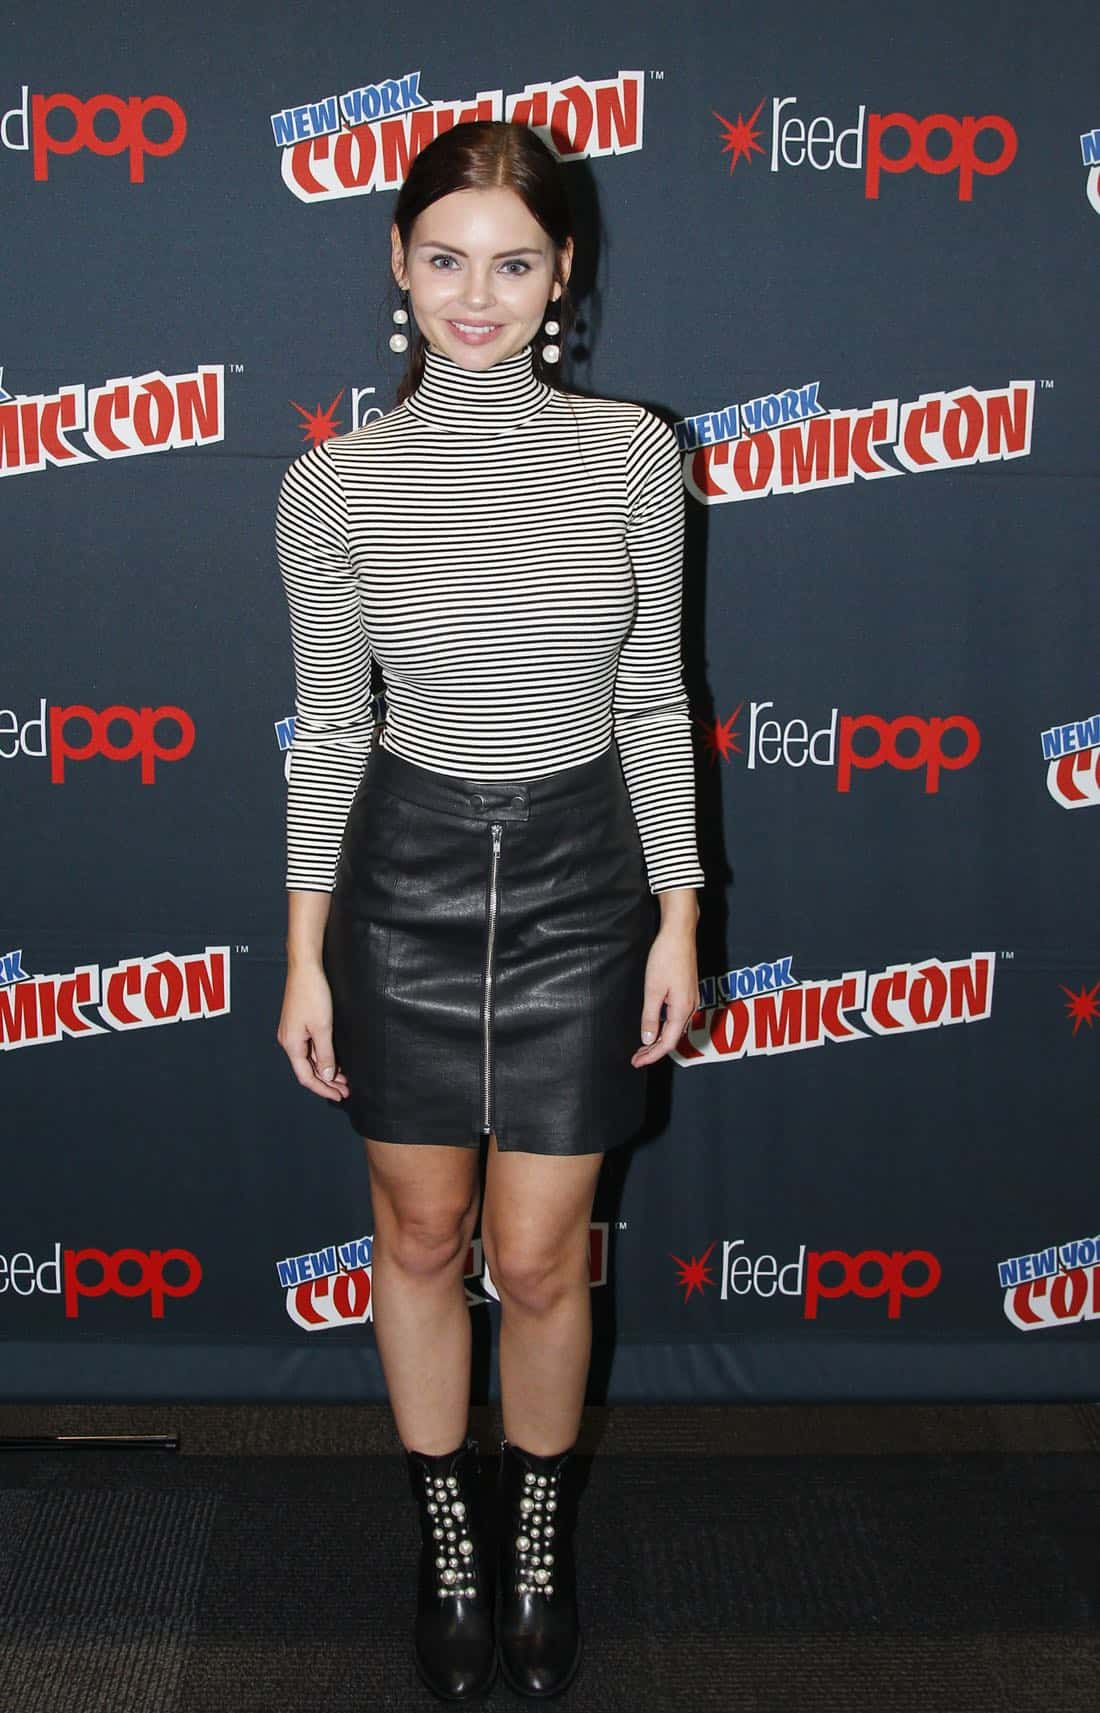 """NY COMIC-CON 2017 - SIREN - Freeform's genre programming was out in full force at this year's New York Comic Con on Saturday, October 7th with executive producers and cast from the hit series """"Shadowhunters,"""" """"Beyond,"""" and new original series """"Siren.""""  (Freeform/Lou Rocco) ELINE POWELL"""